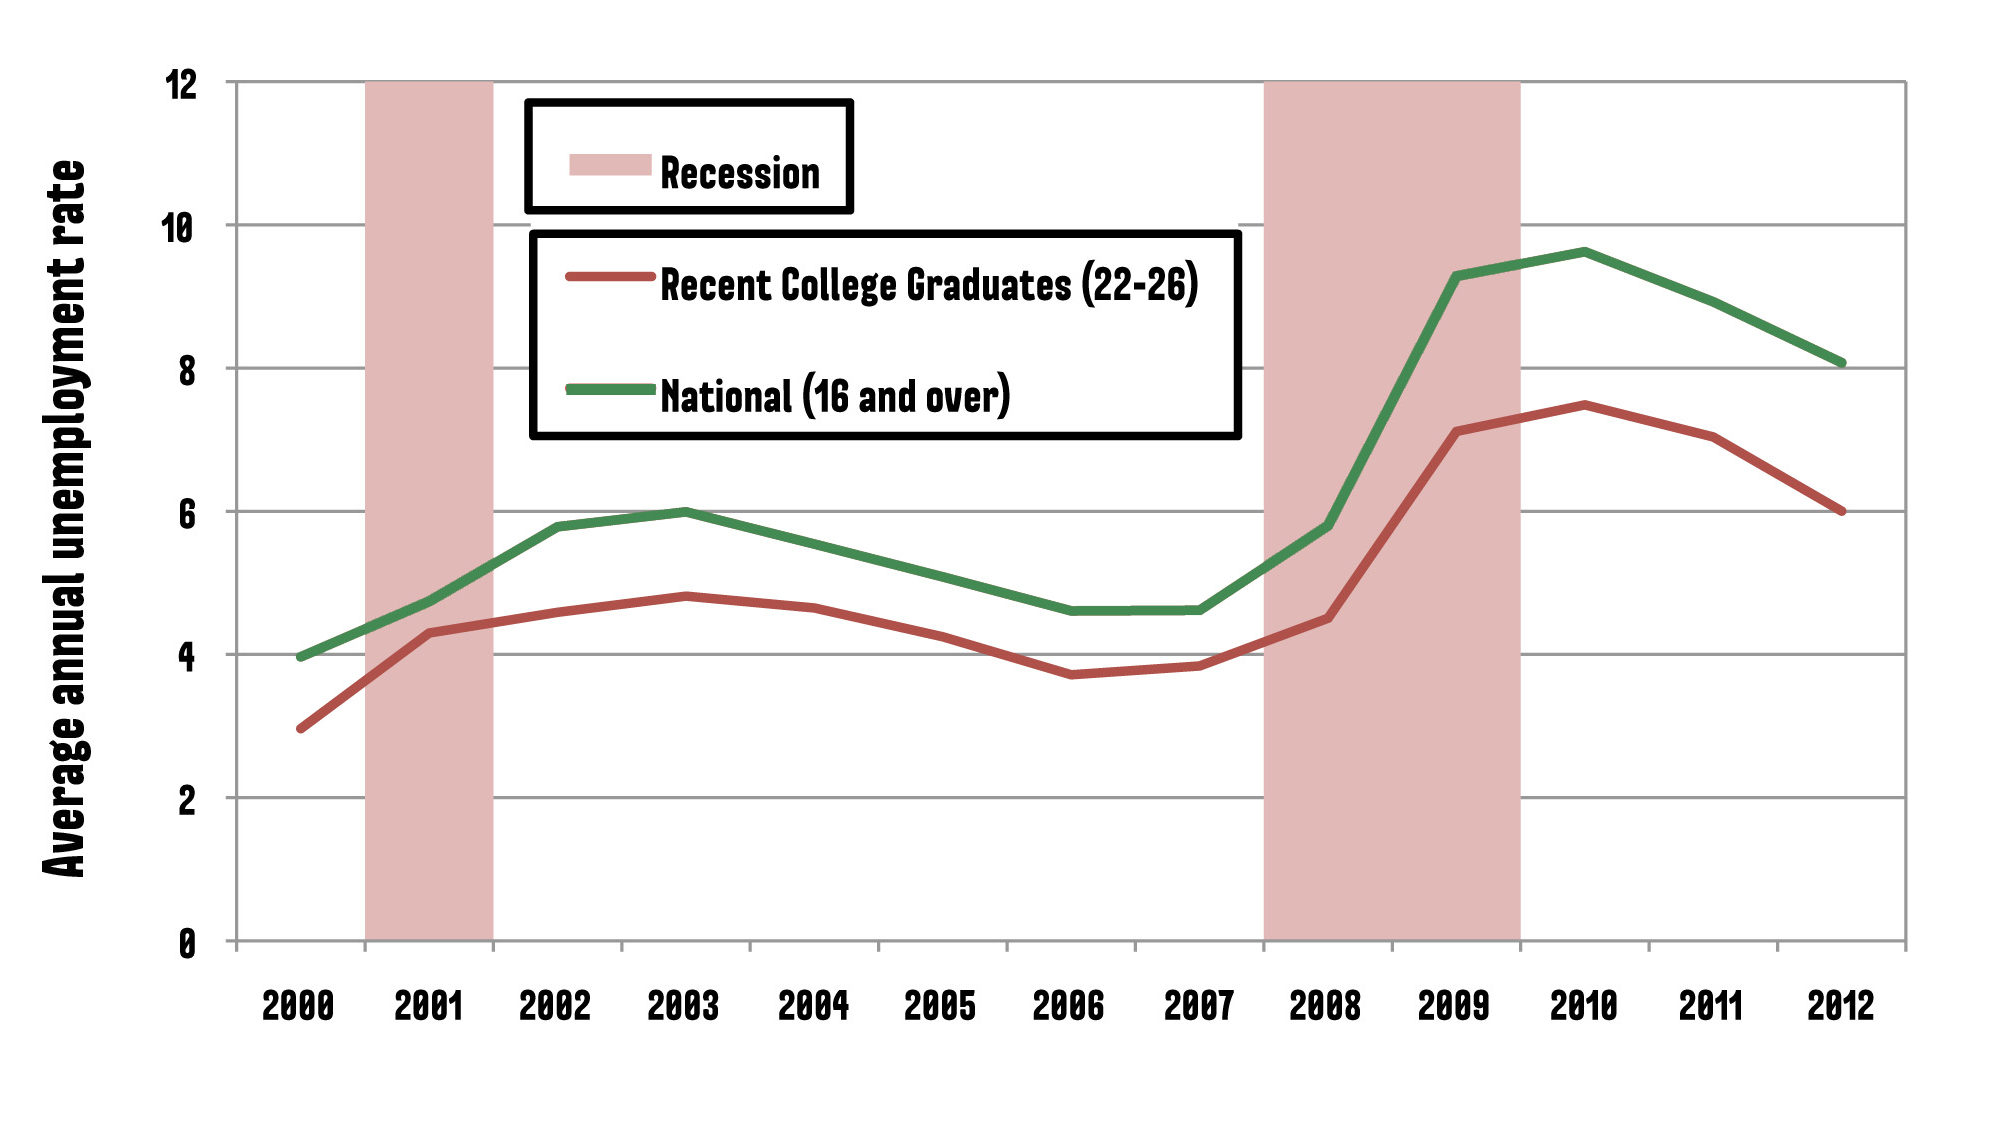 Average annual unemployment rates provide a more accurate picture of recent college graduates employment prospects.